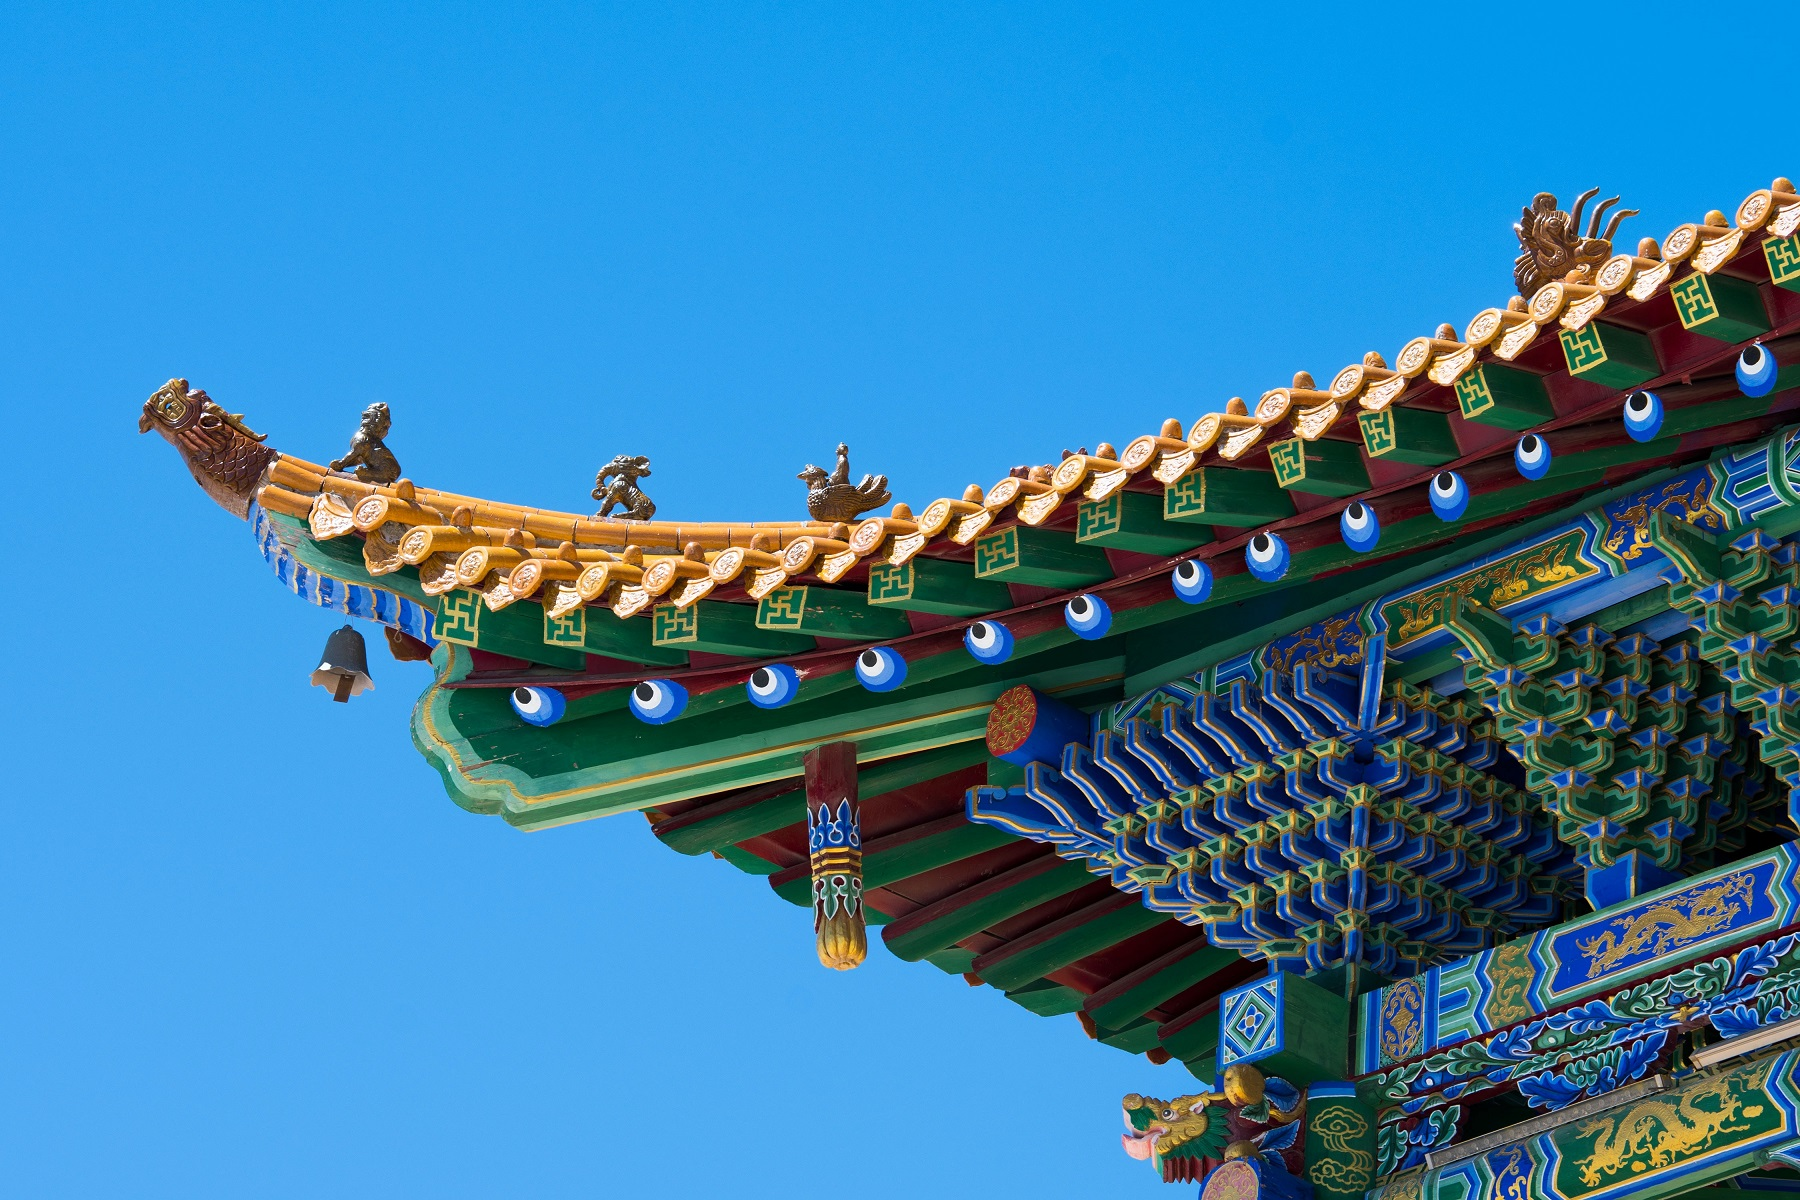 Chinese roof for the Chinese Digital Yuan